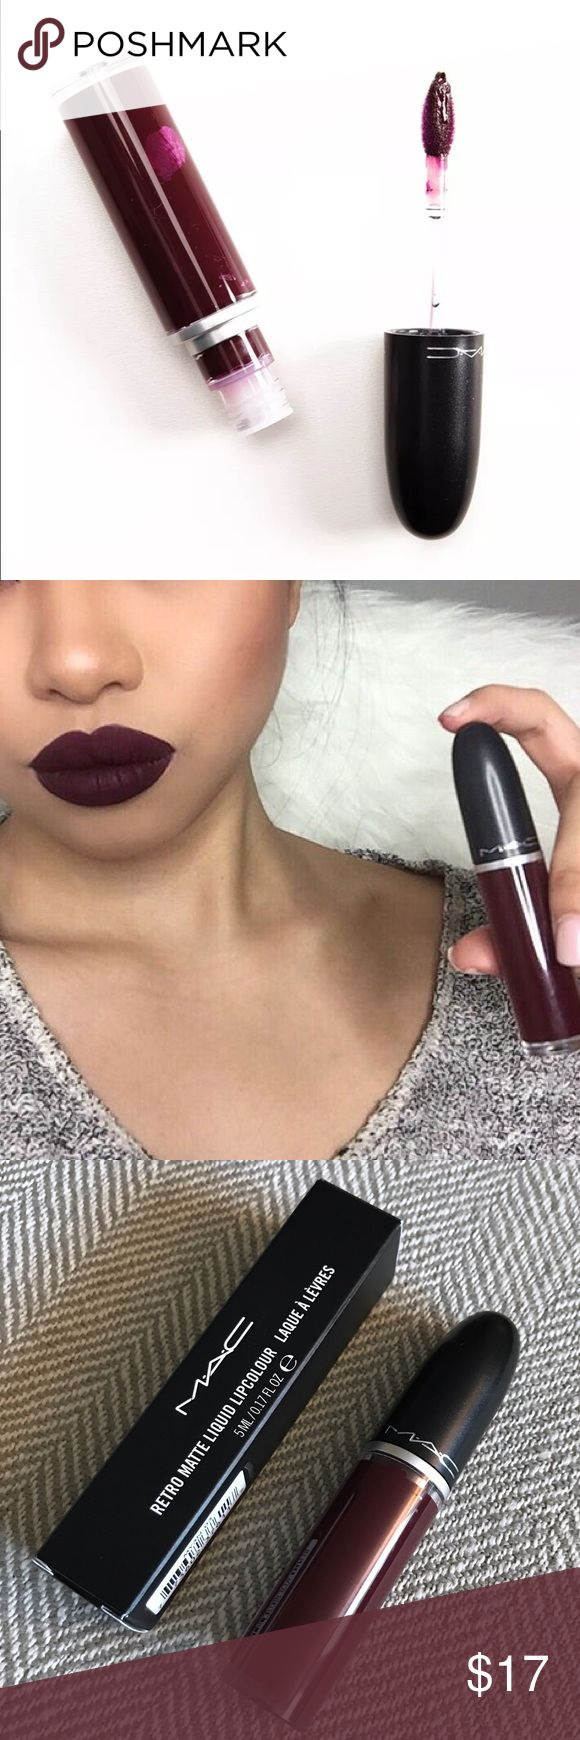 MAC High Drama Retro Matte Liquid Lipstick Authentic. Brand new in box. Matte finish. Color is High Drama, a deep plum. This long-wearing liquid lip color wears evenly and smoothly for eight hours.  Non-feathering, non-bleeding MAC Cosmetics Makeup Lipstick